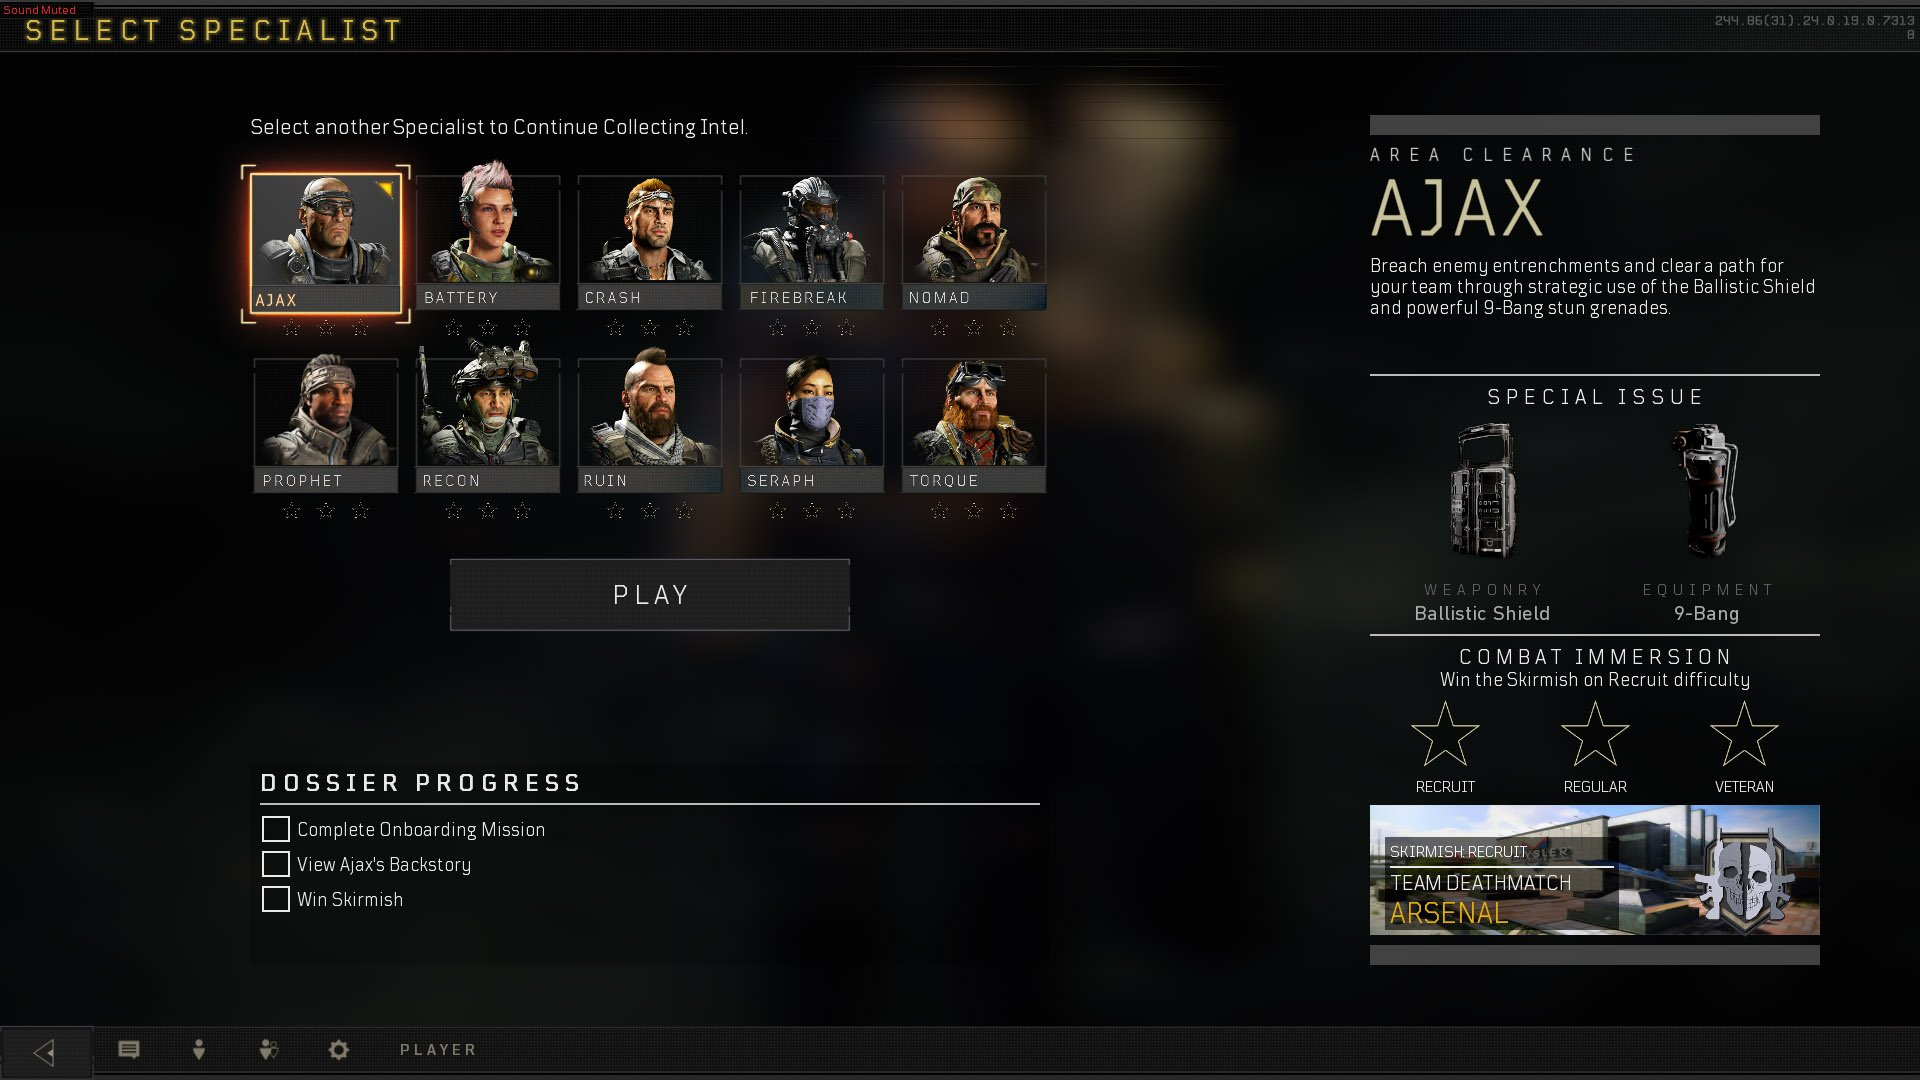 Specialist Classes and Abilities in Call of Duty: Black Ops 4